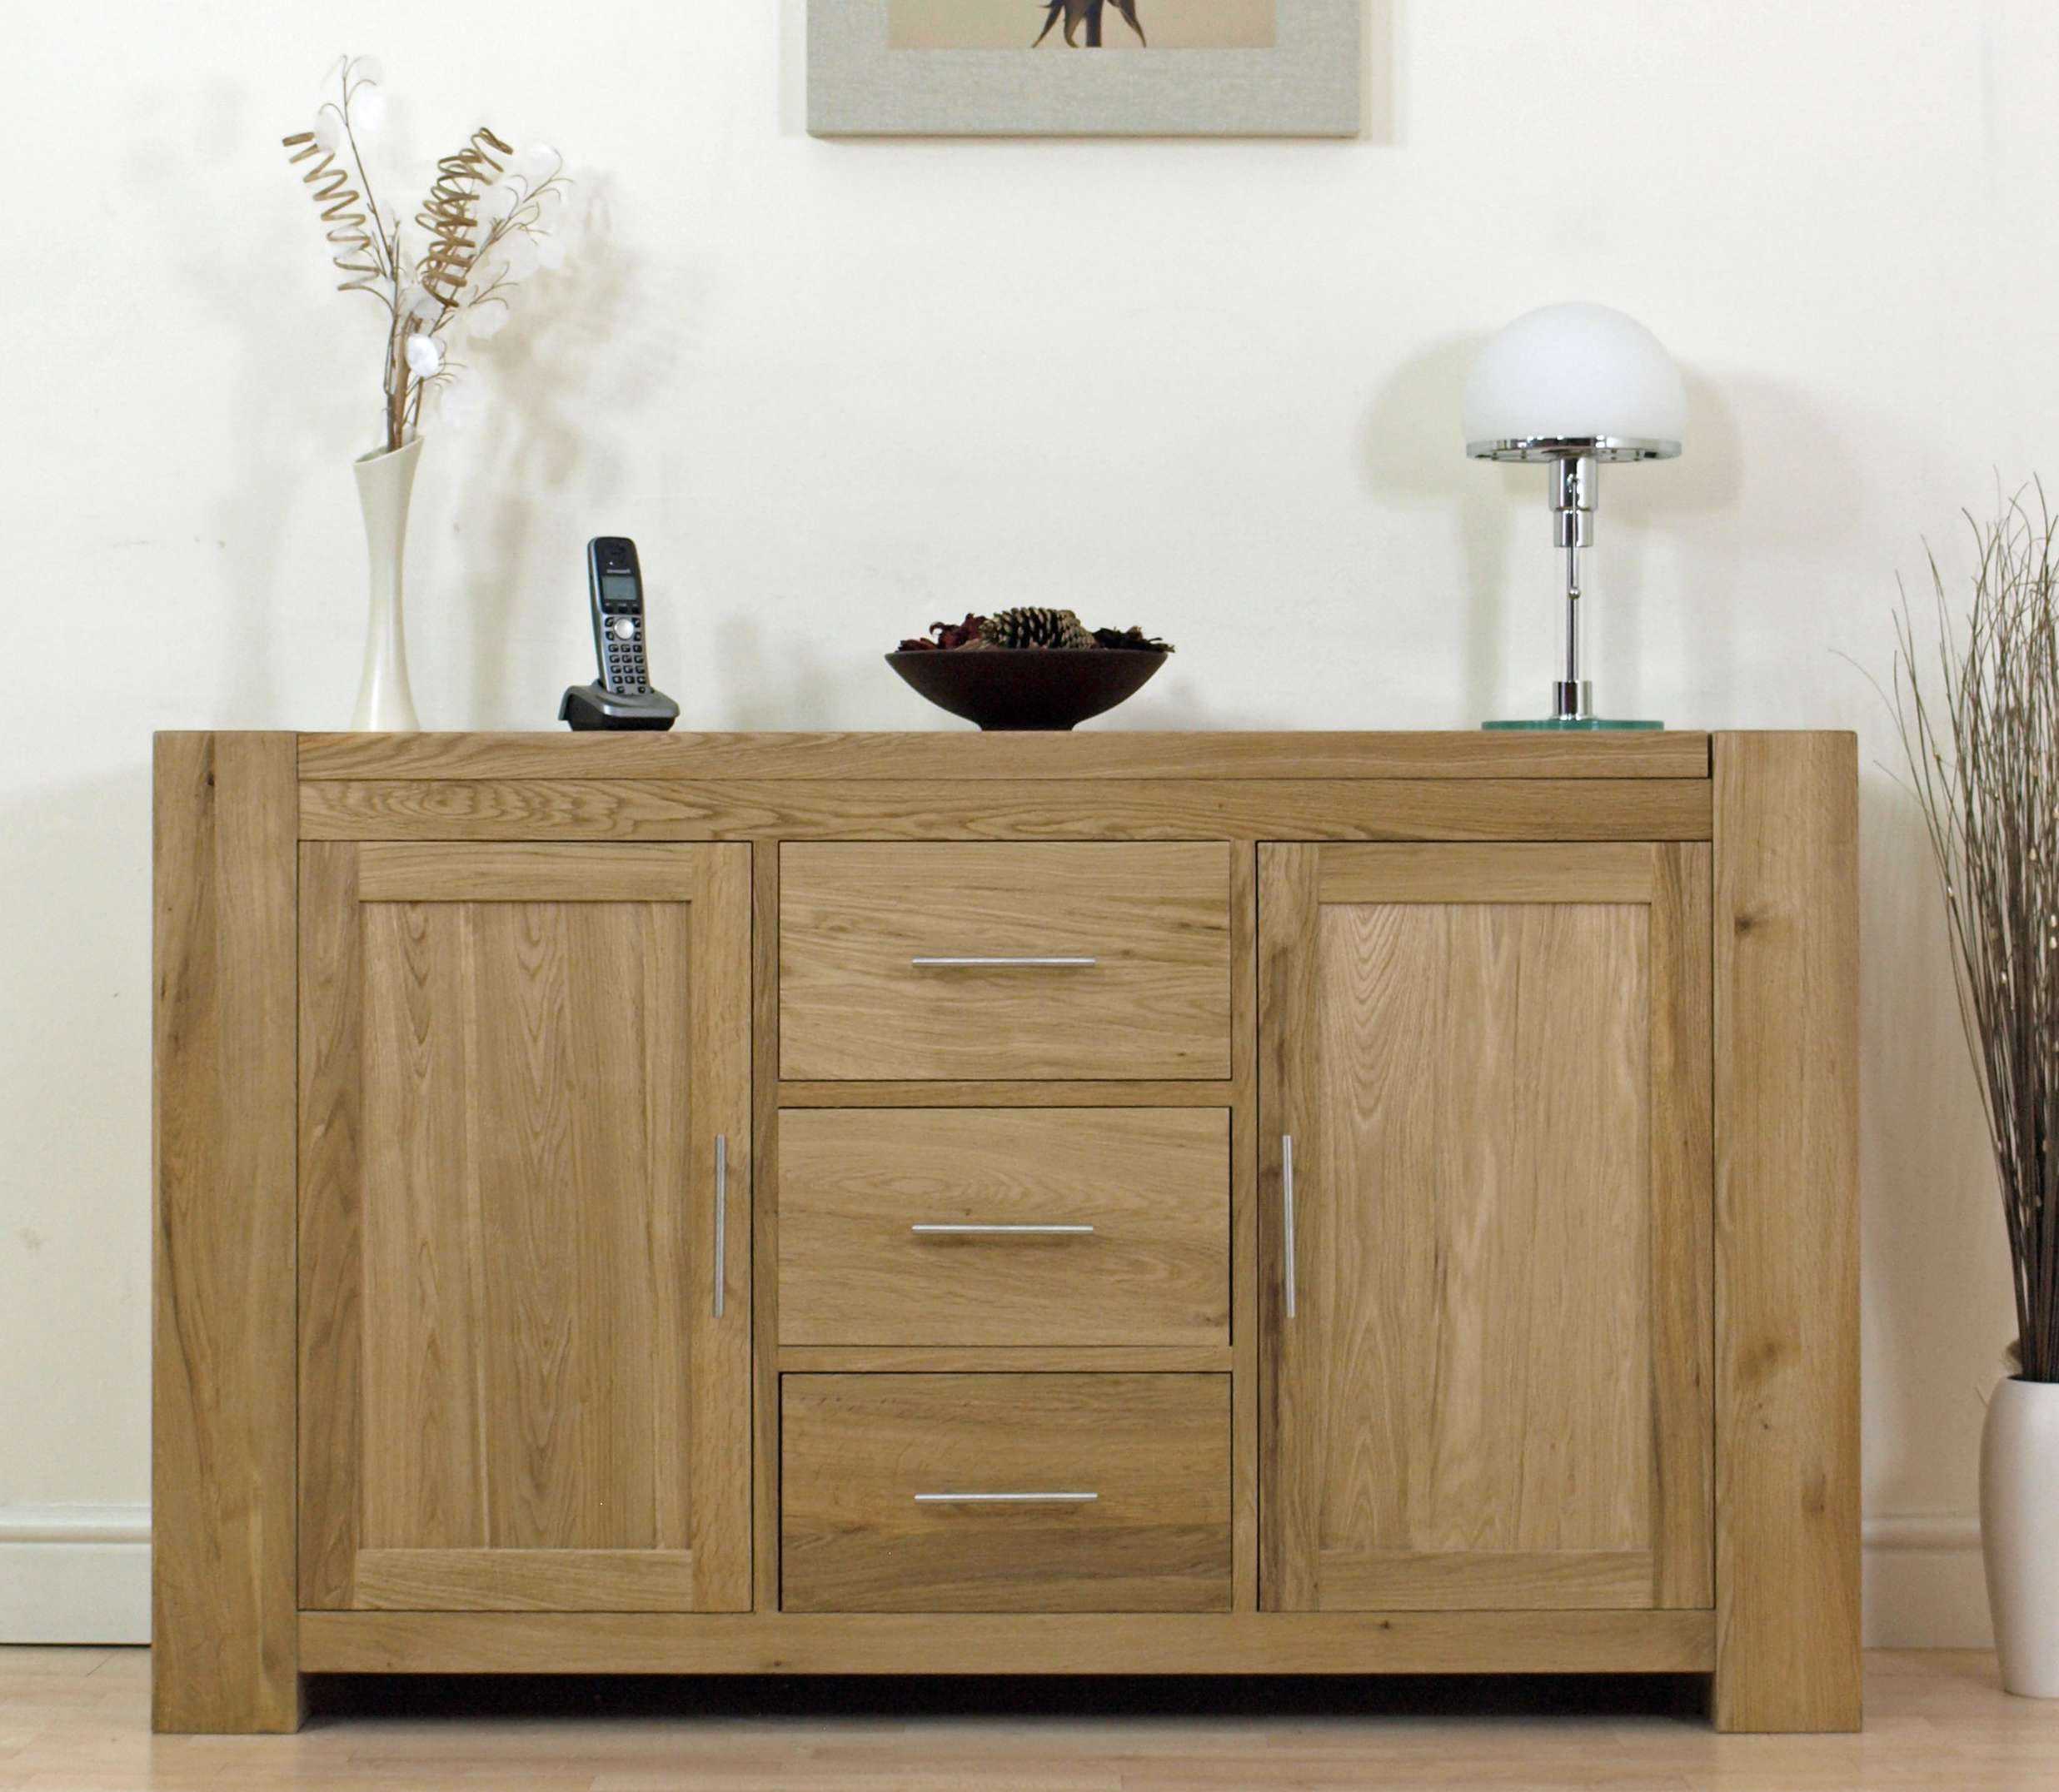 Solid Oak Sideboard Is Your First Choice Living Room Furniture – Hgnv With Living Room Sideboards (View 13 of 20)